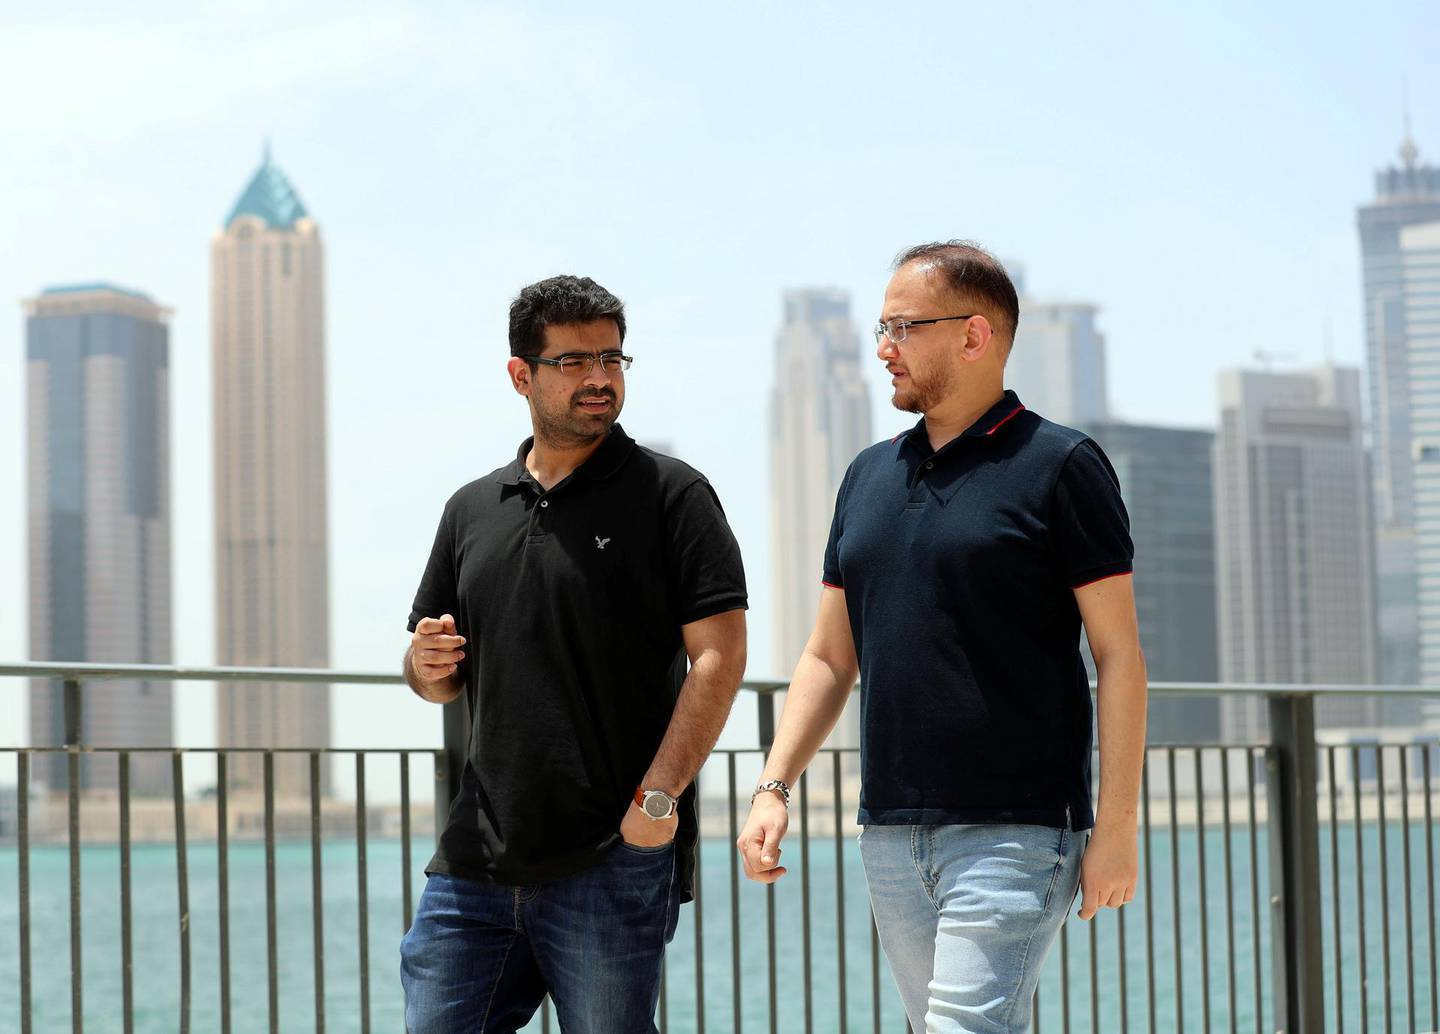 Monish Chandiramani (L) and Jatin Sharma, founders of start-up Yippee in Dubai on April 29th, 2021. Chris Whiteoak / The National.  Reporter: Alkesh Sharma for Business